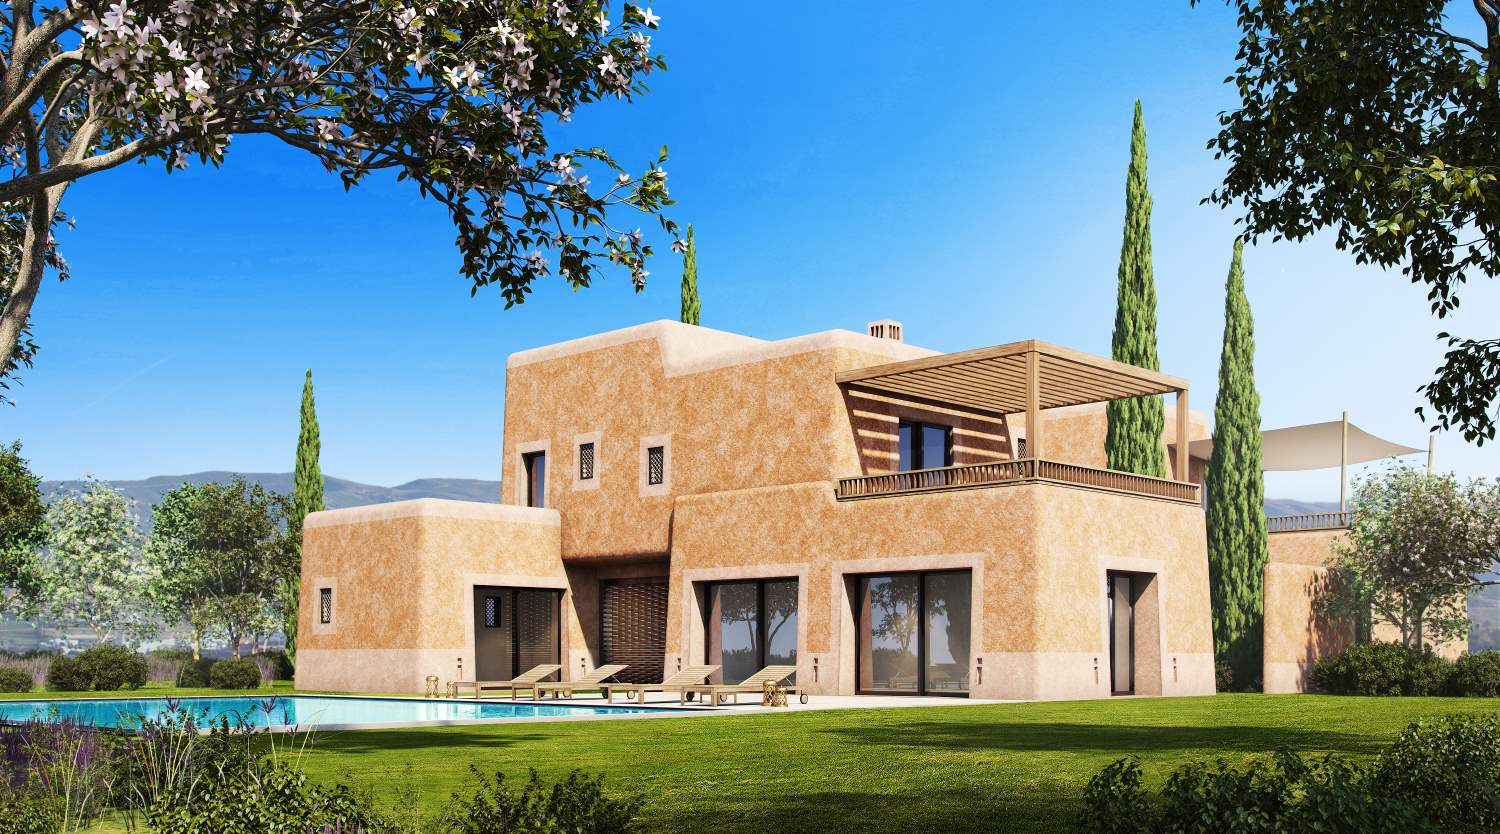 Render 3D - Architectural Visualization - Infografias 3D para dos villas en Marruecos